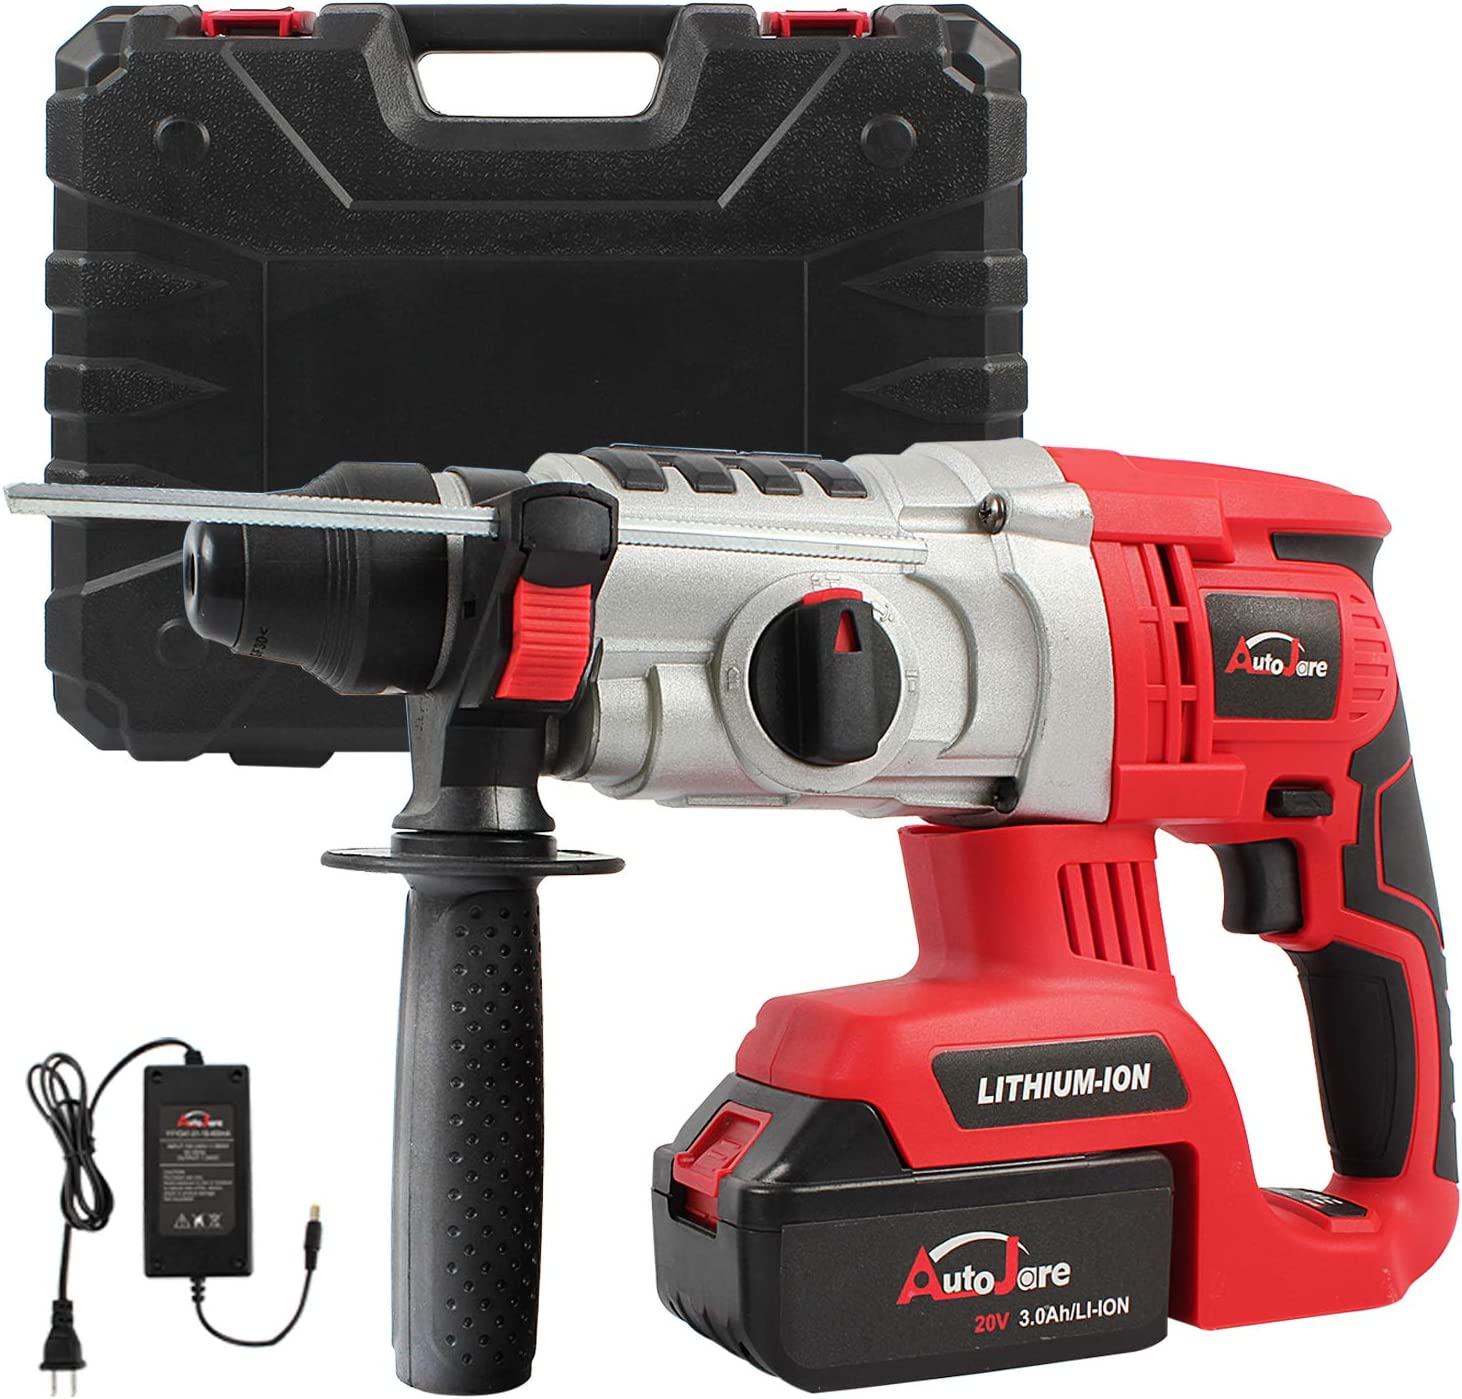 20V Max 18V 1inch SDS-plus Cordless Rotary Hammer Drill, AUTOJARE Brushless Rotary Hammer Drill Kits Includes 3.0Ah Lithium Battery Charger